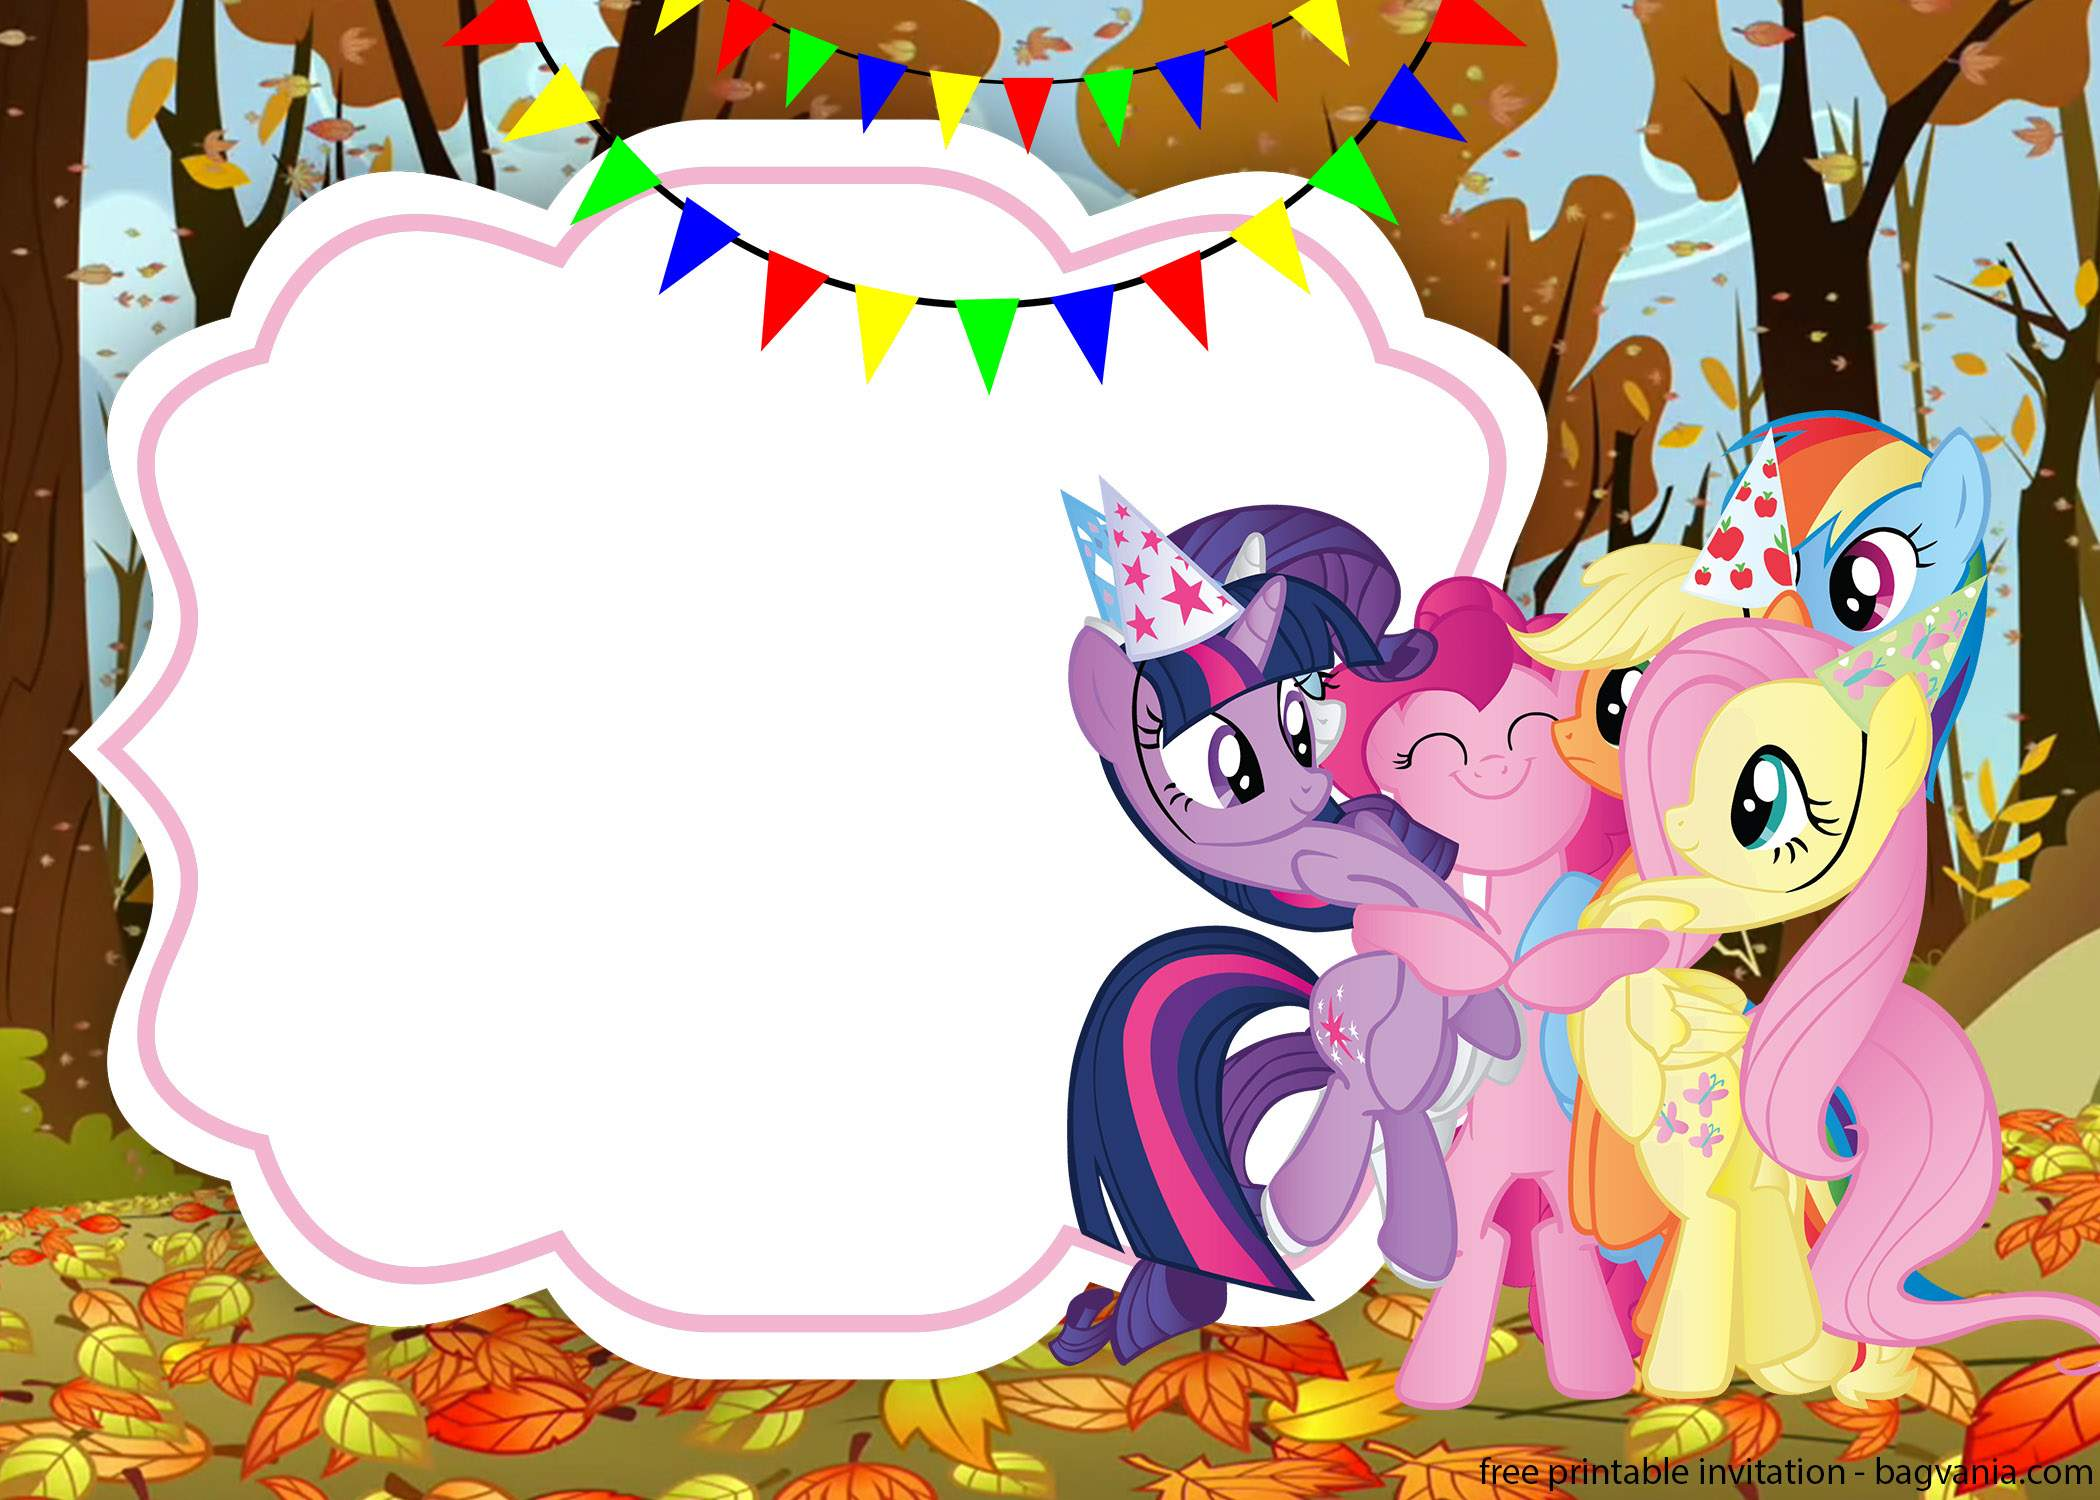 Using My Little Pony As The Main Theme Of Party Will Be Fun And Colorful In Order To Make It Looks Nicer More You Can Add Some Balloons With